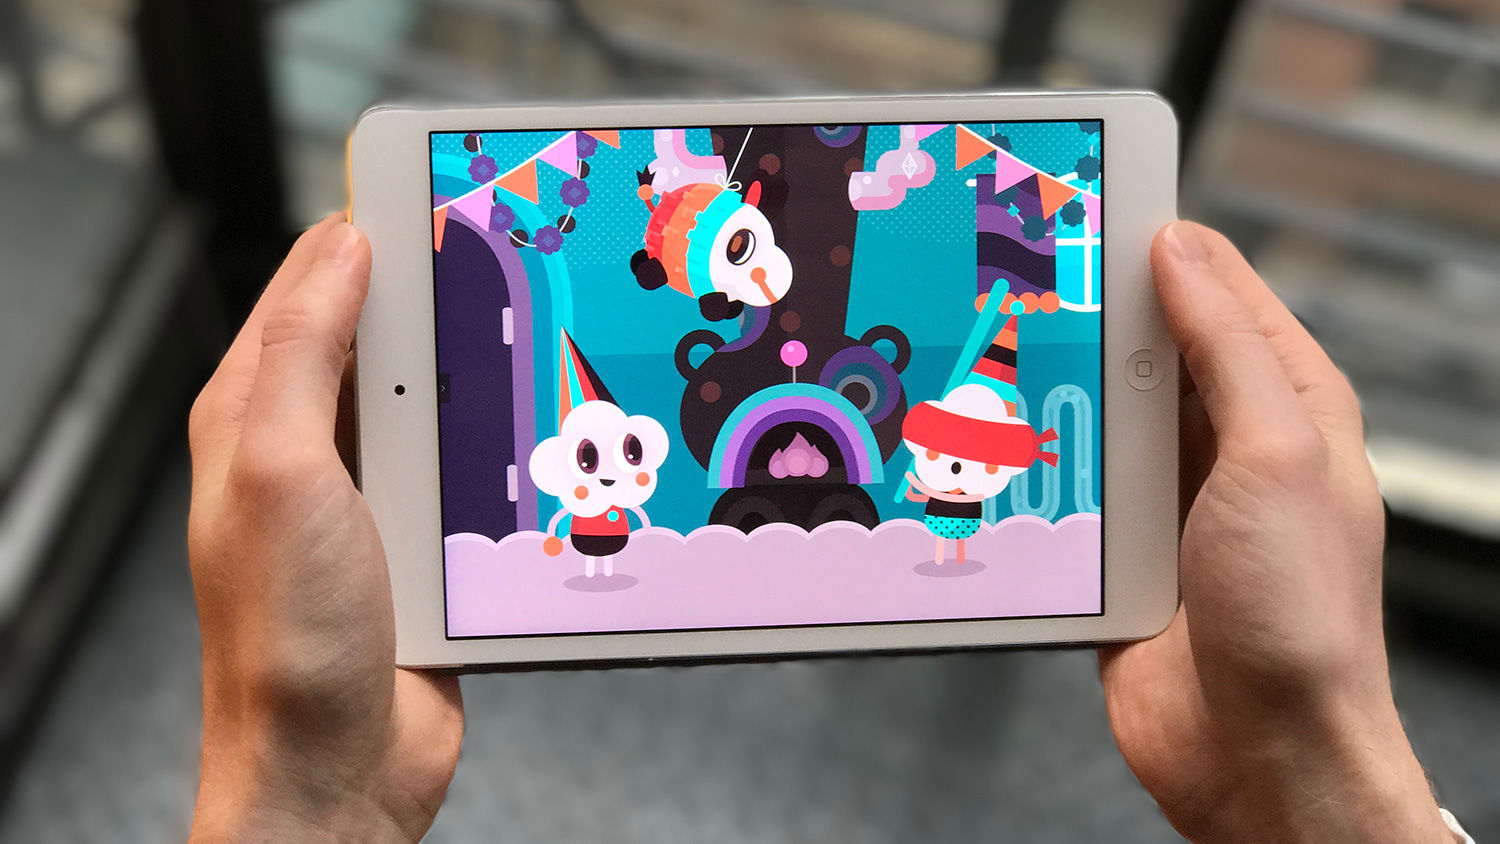 Lightwell interactive storybook app released free as